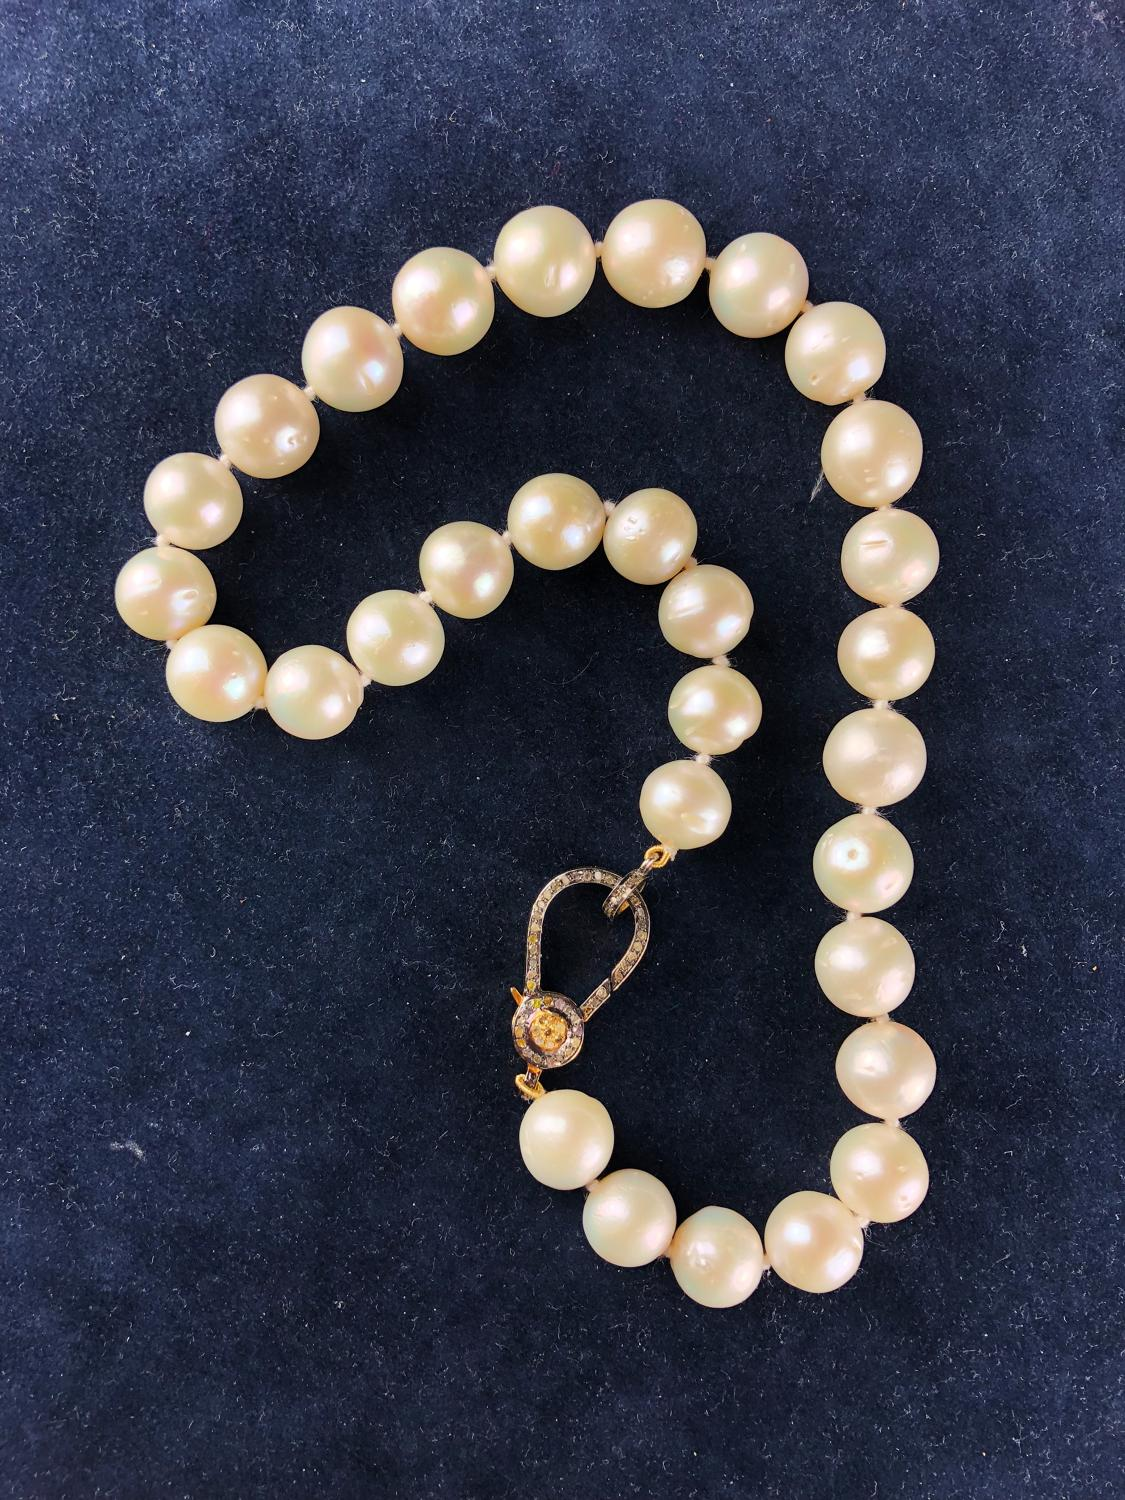 A Large Baroque 30 Pearl Necklace